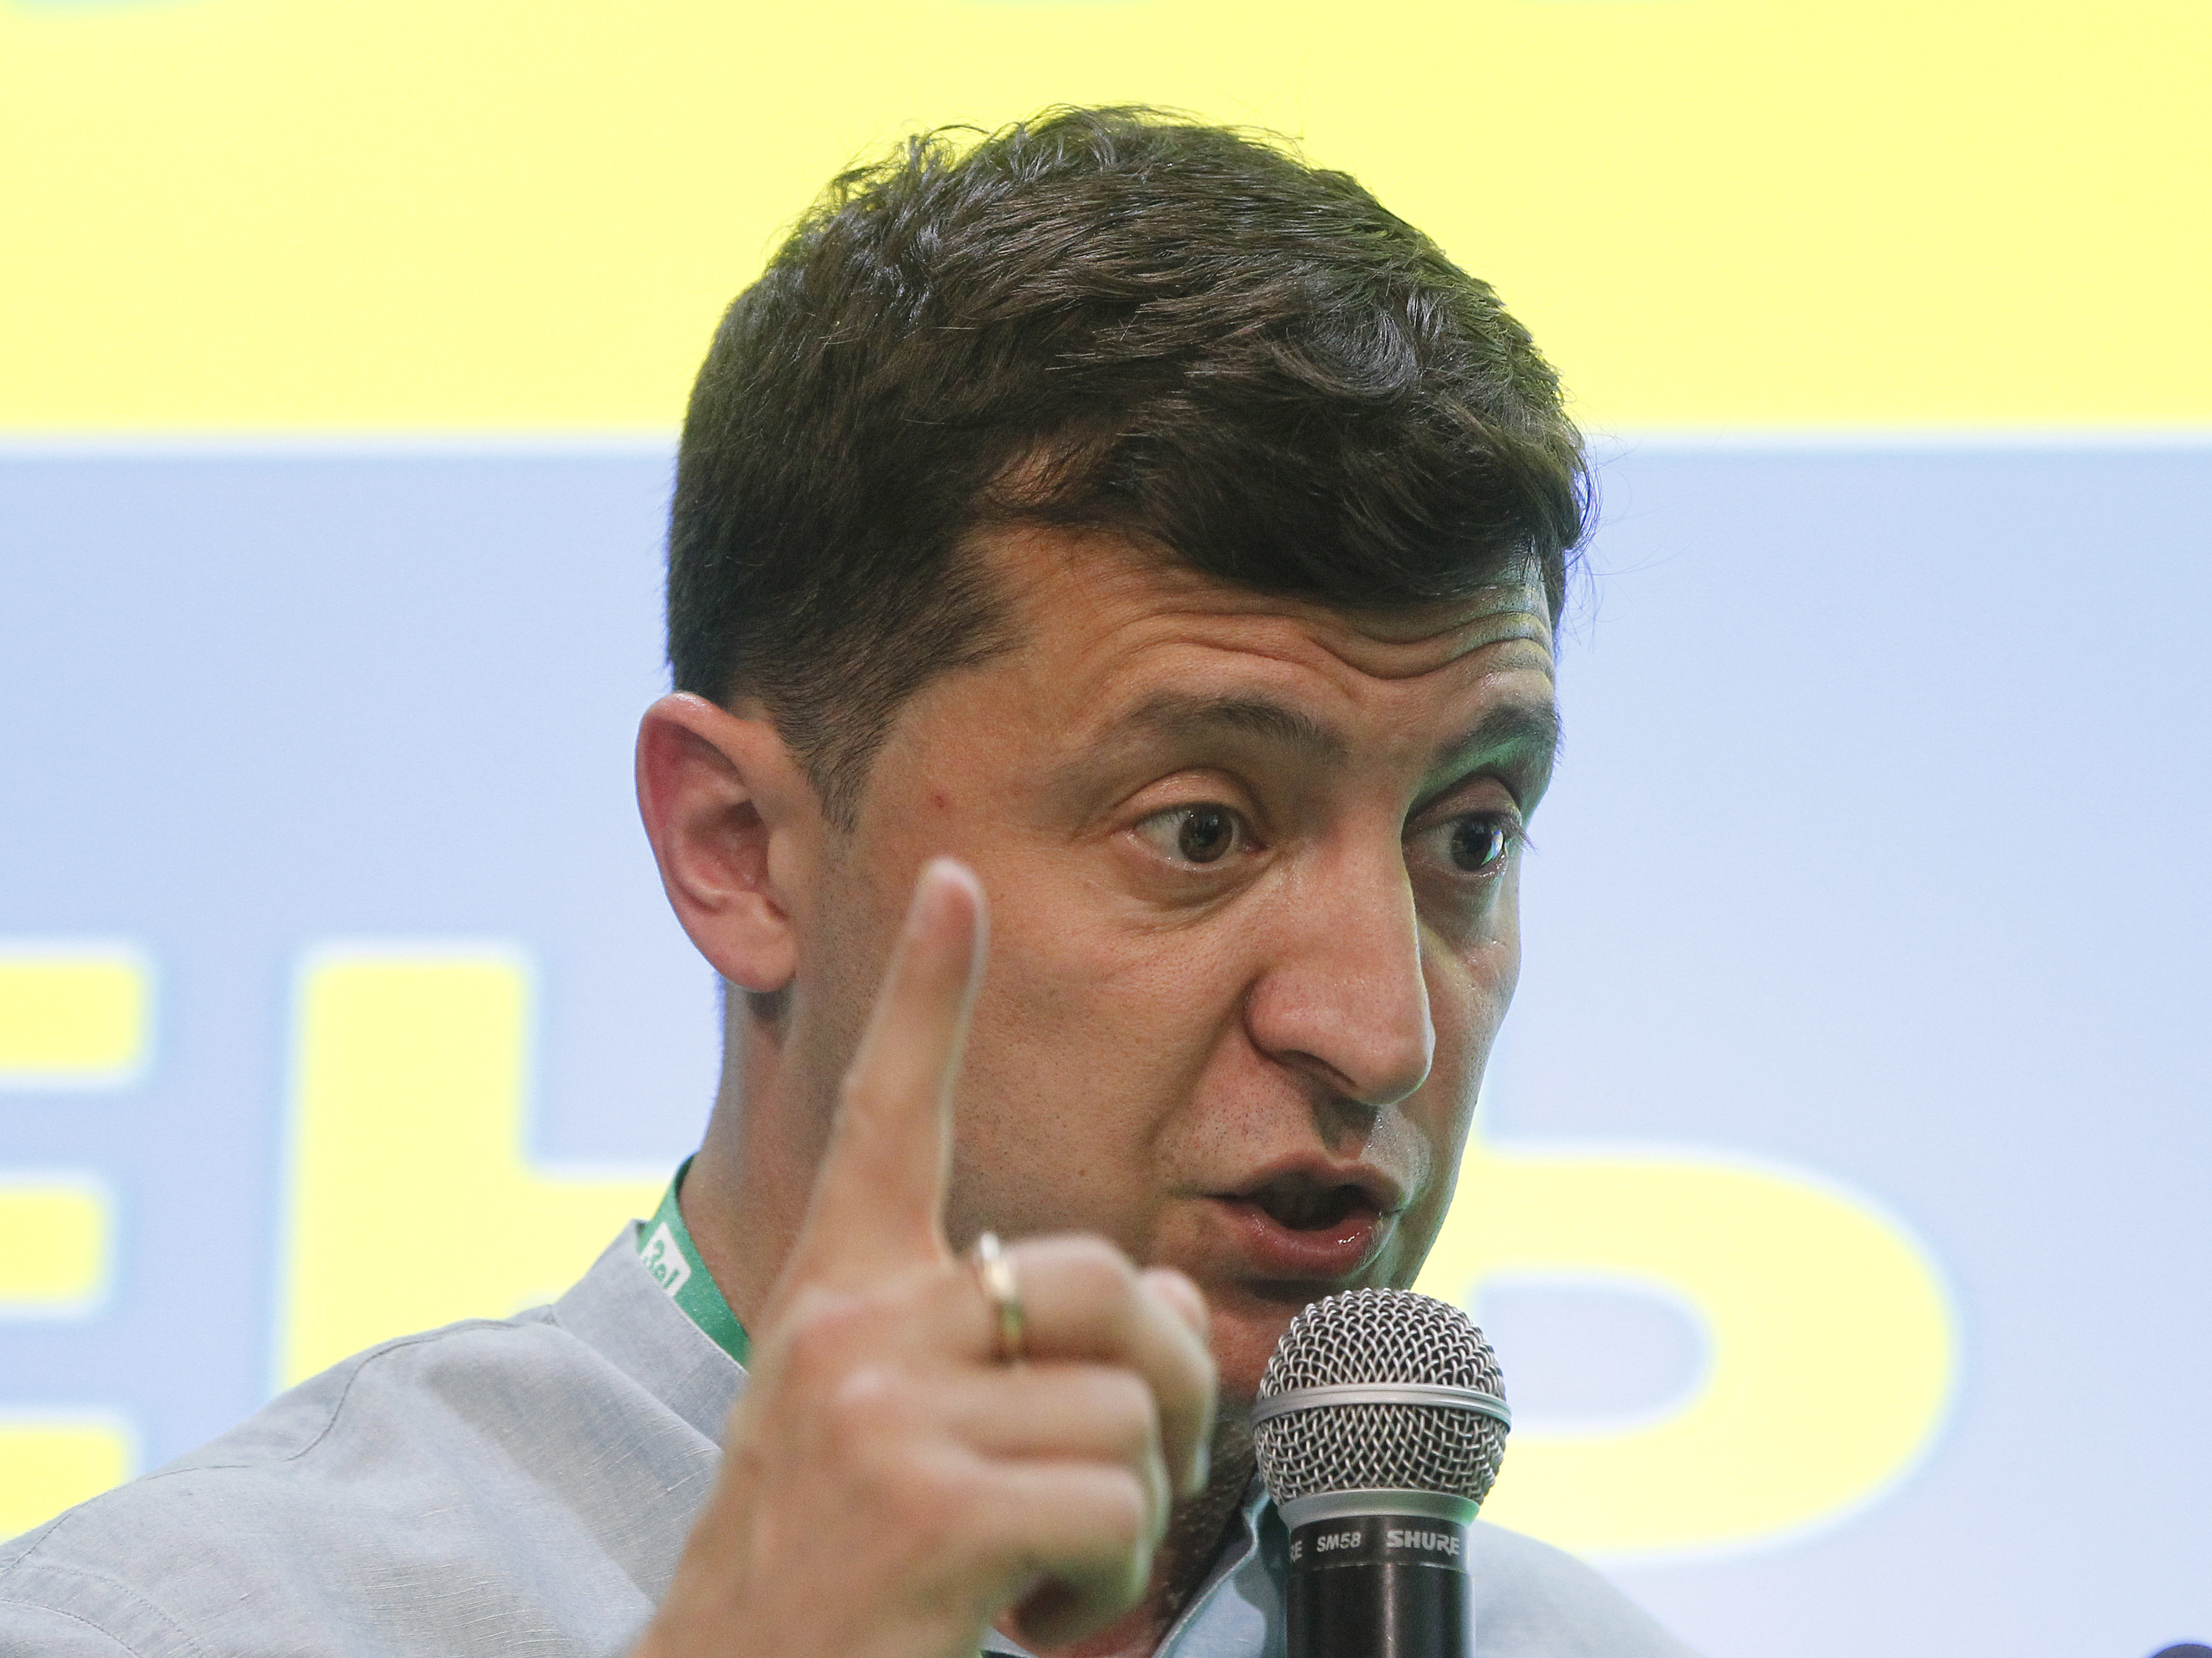 Ukrainian President's Party Wins Snap Elections In Bid To Consolidate Power